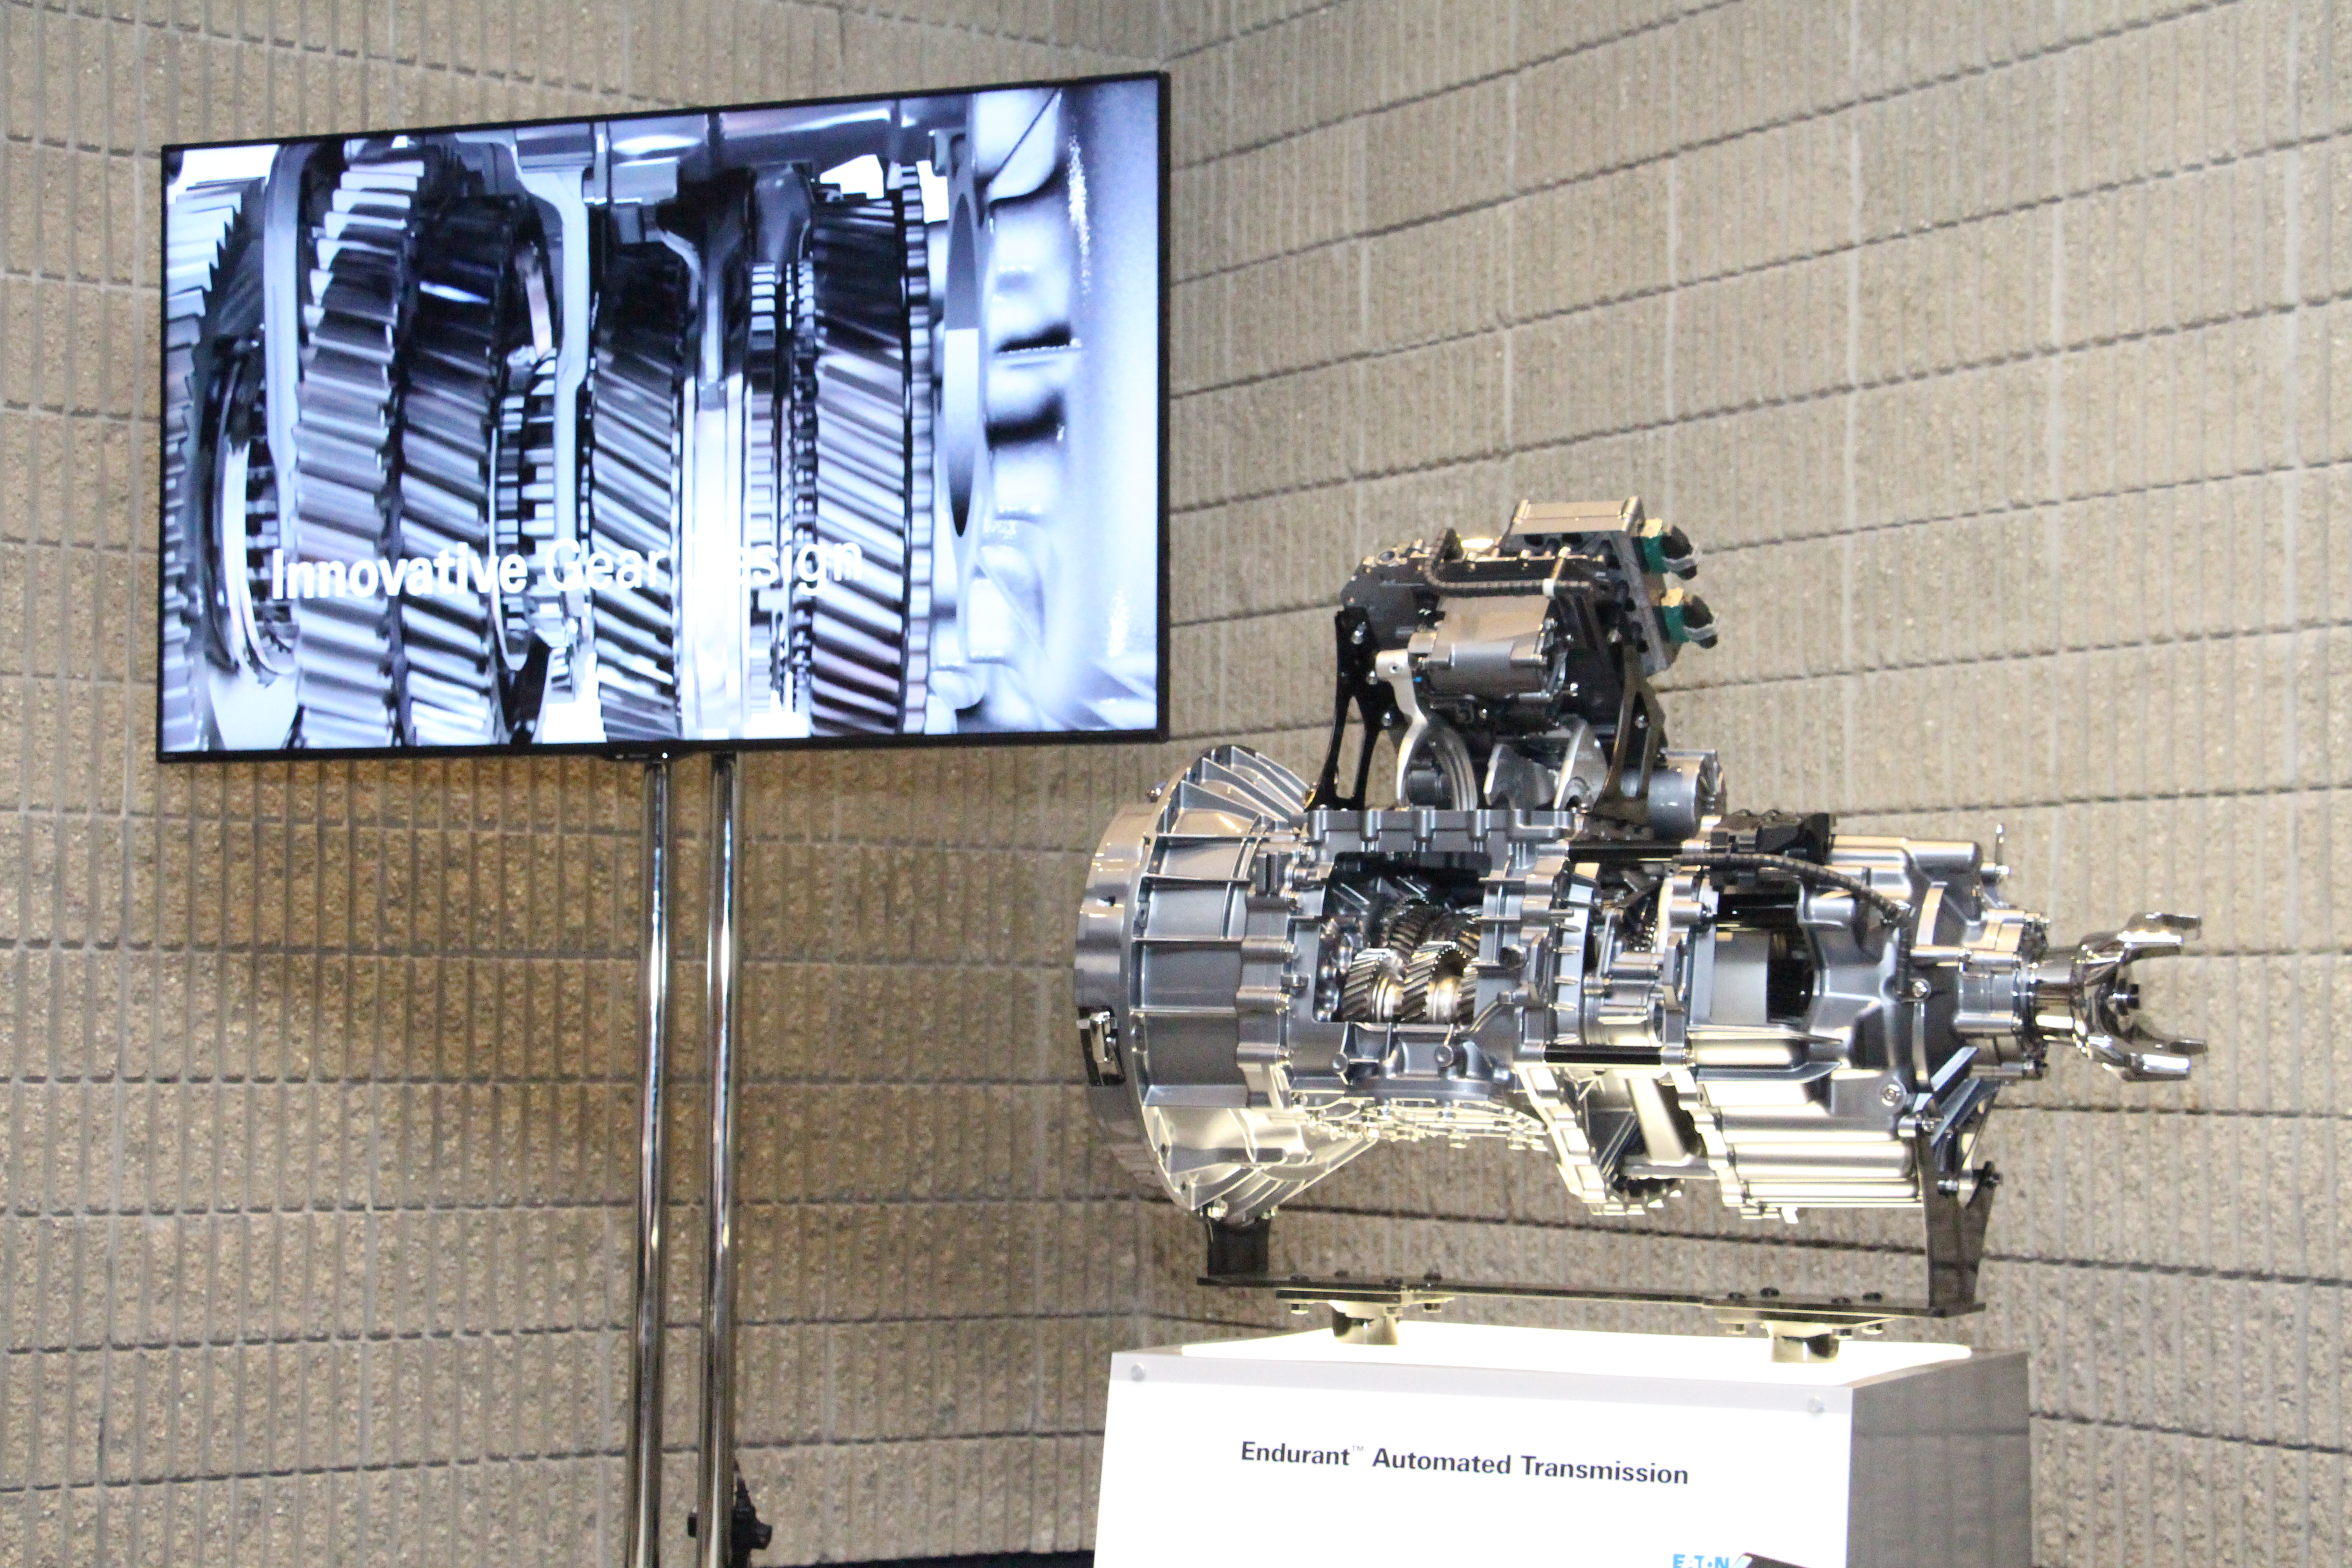 Eaton Cummins Automated Transmissions Recalled for Software